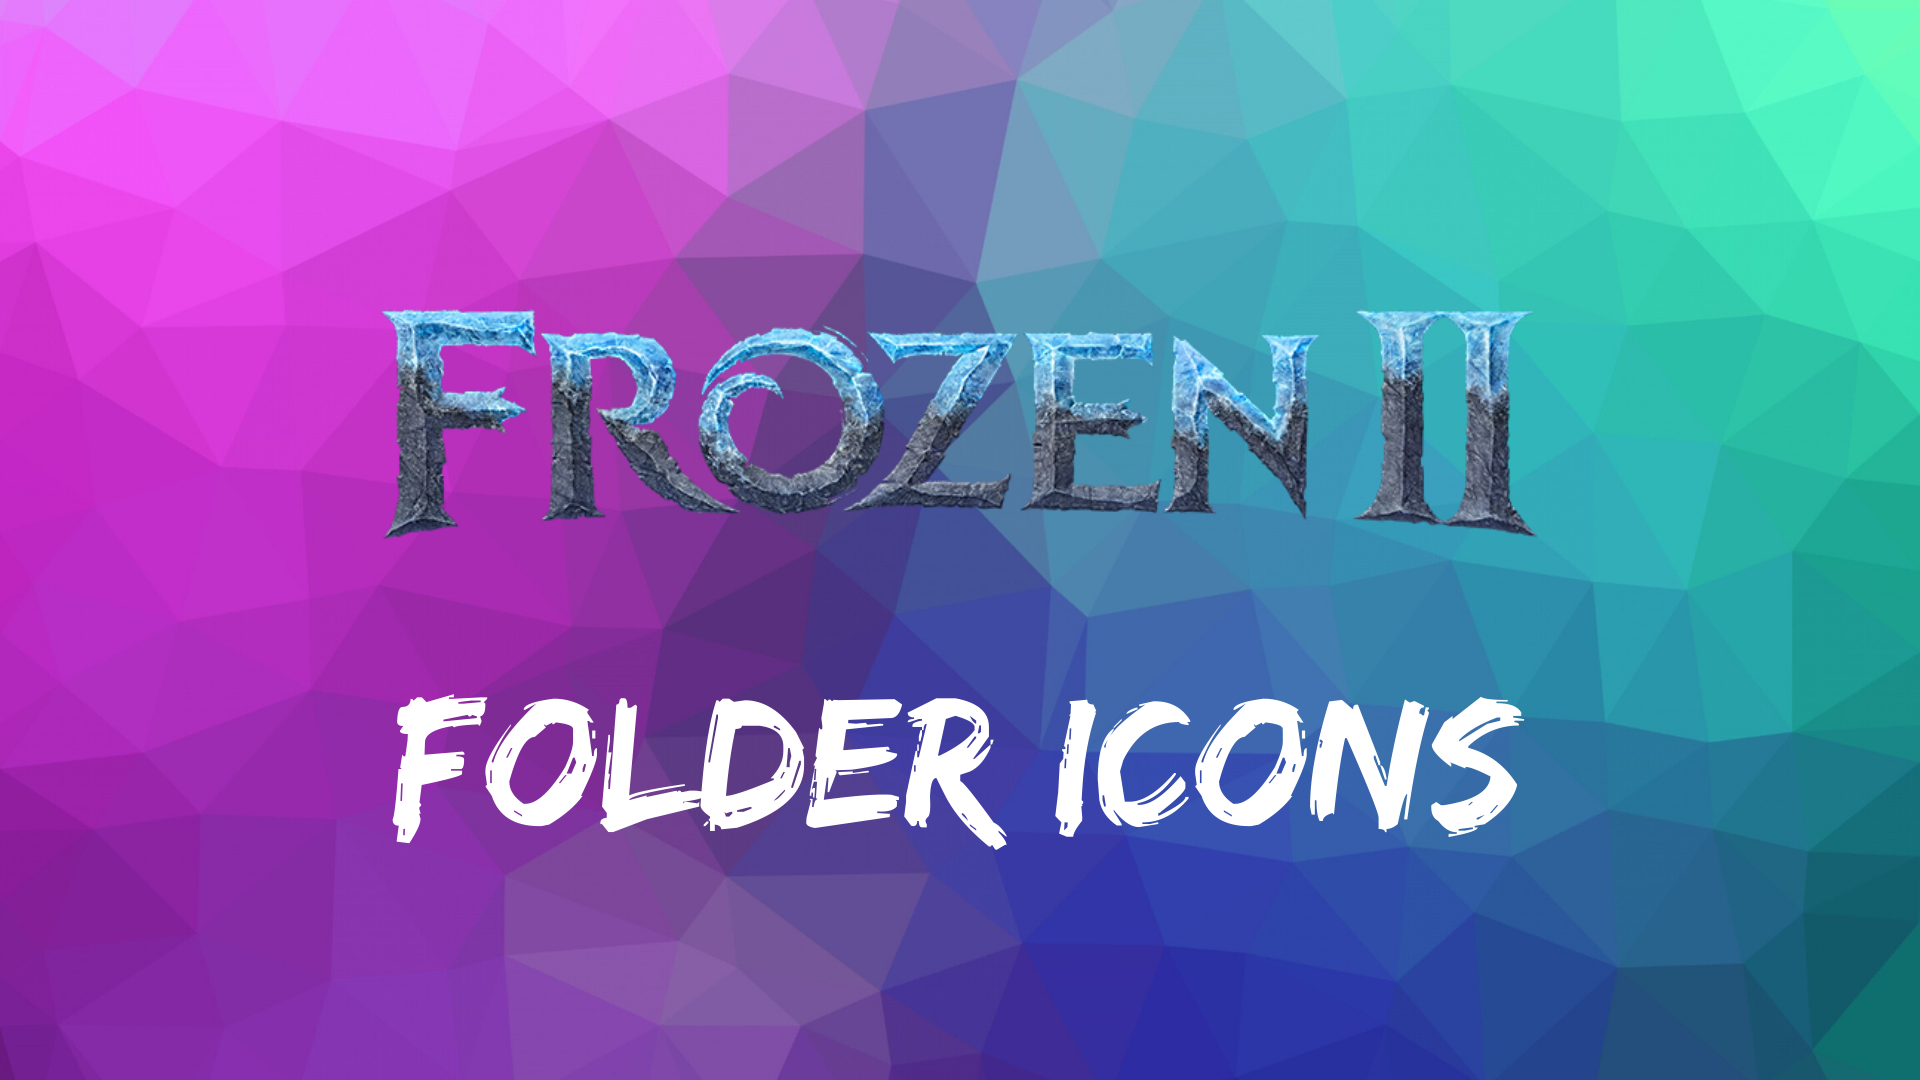 Frozen II Movie Folder Icons